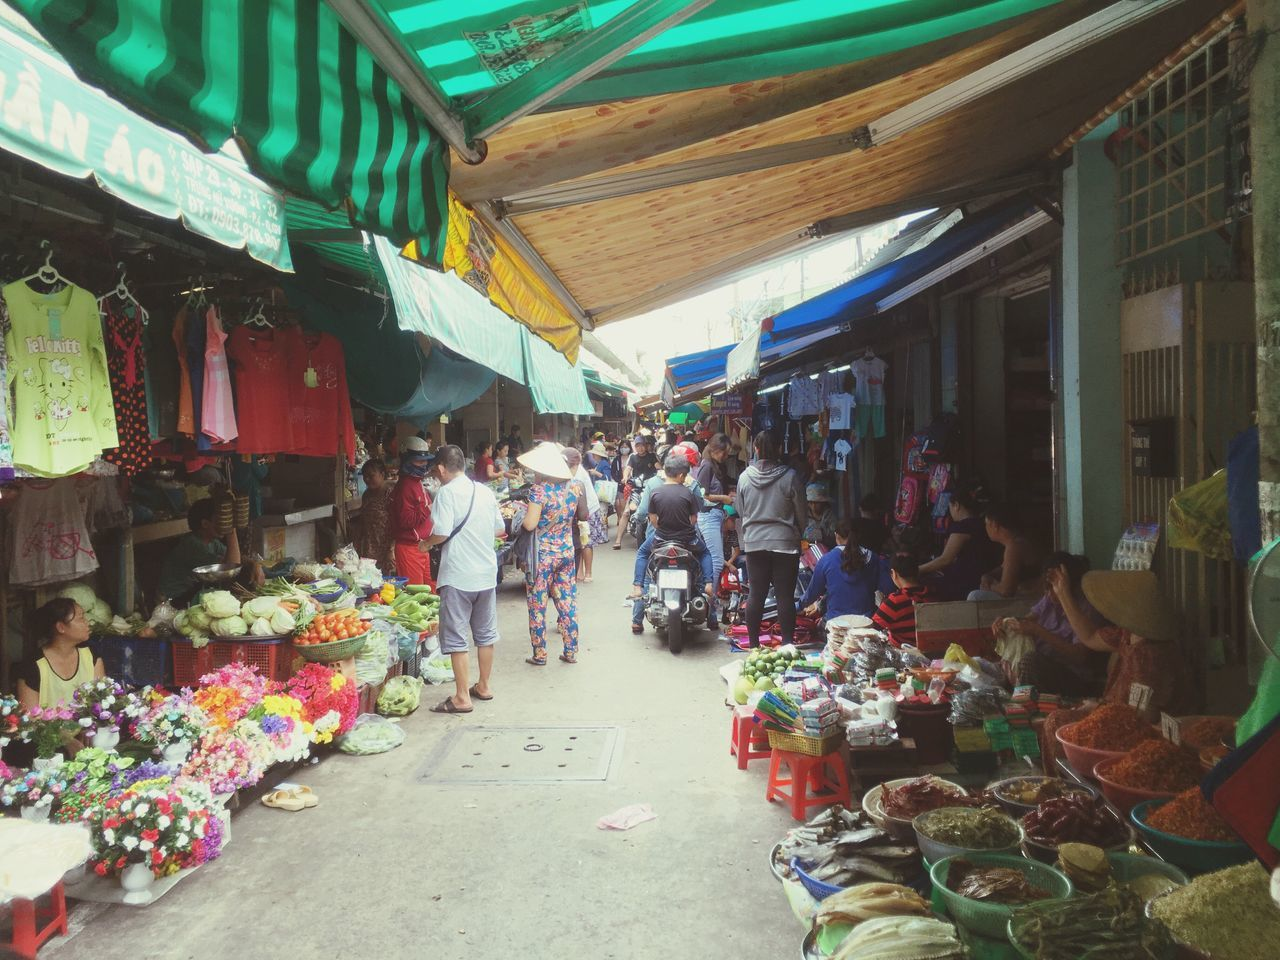 market, for sale, retail, market stall, group of people, large group of objects, shopping, business, small business, choice, men, store, real people, day, retail display, street market, women, abundance, variation, architecture, sale, buying, consumerism, outdoors